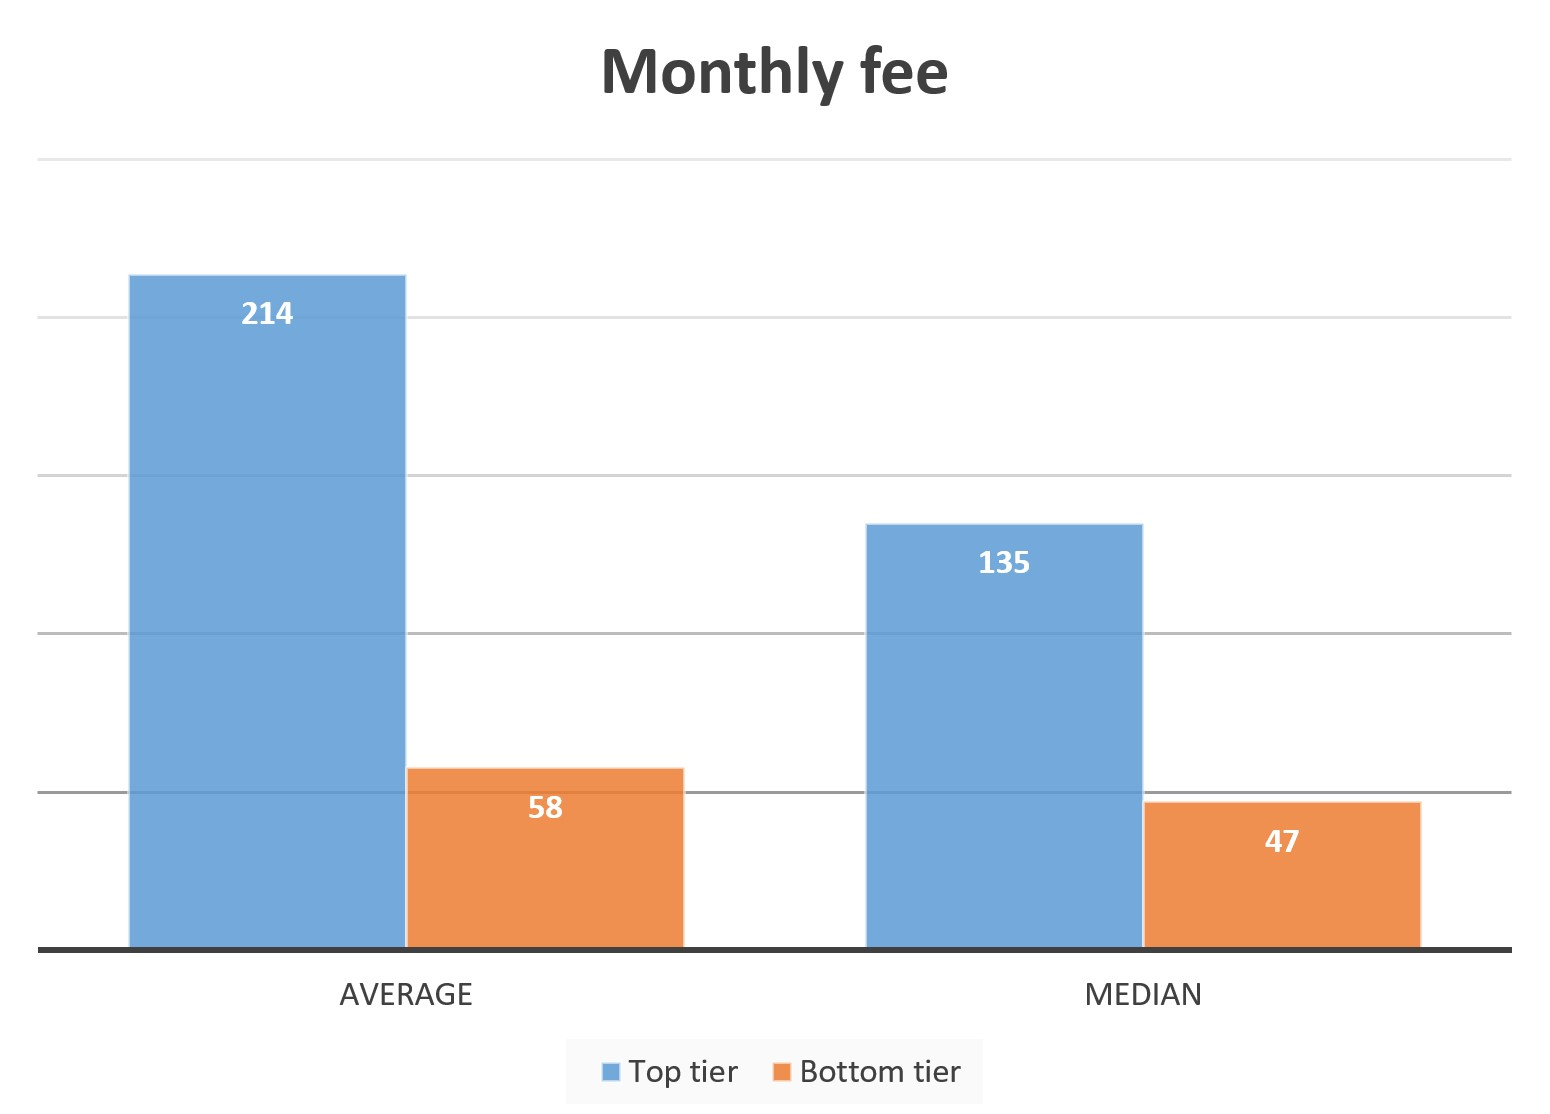 average-vs-median-fee